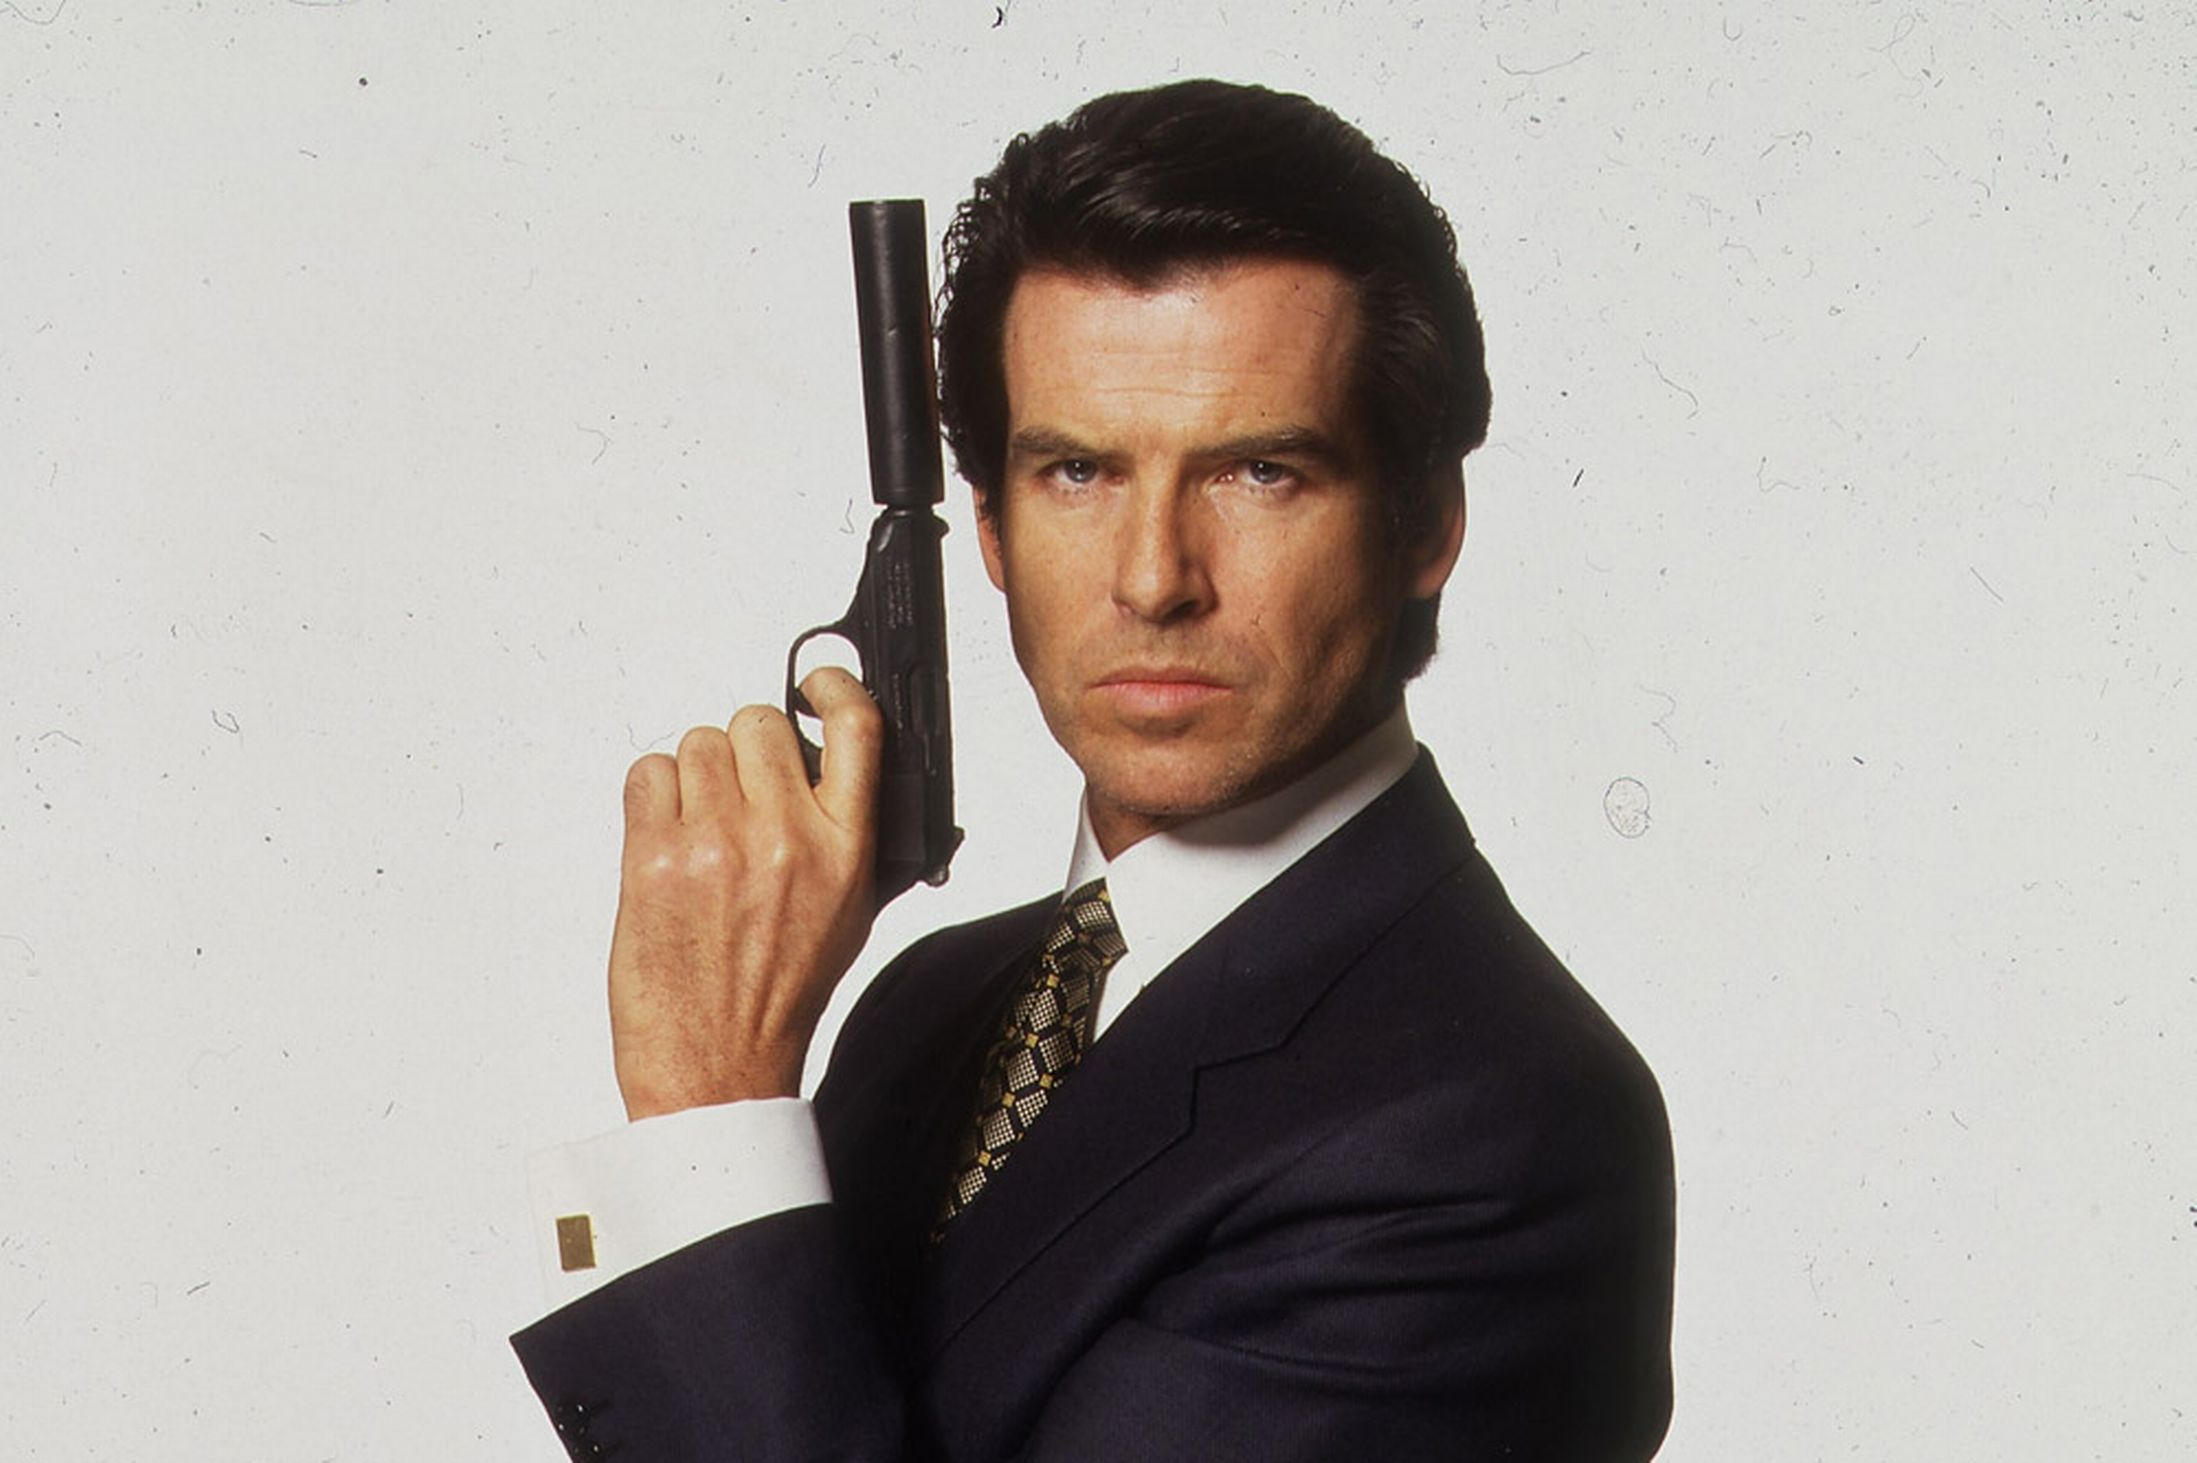 ... tuxedo in any other non James Bond films while he is under contract